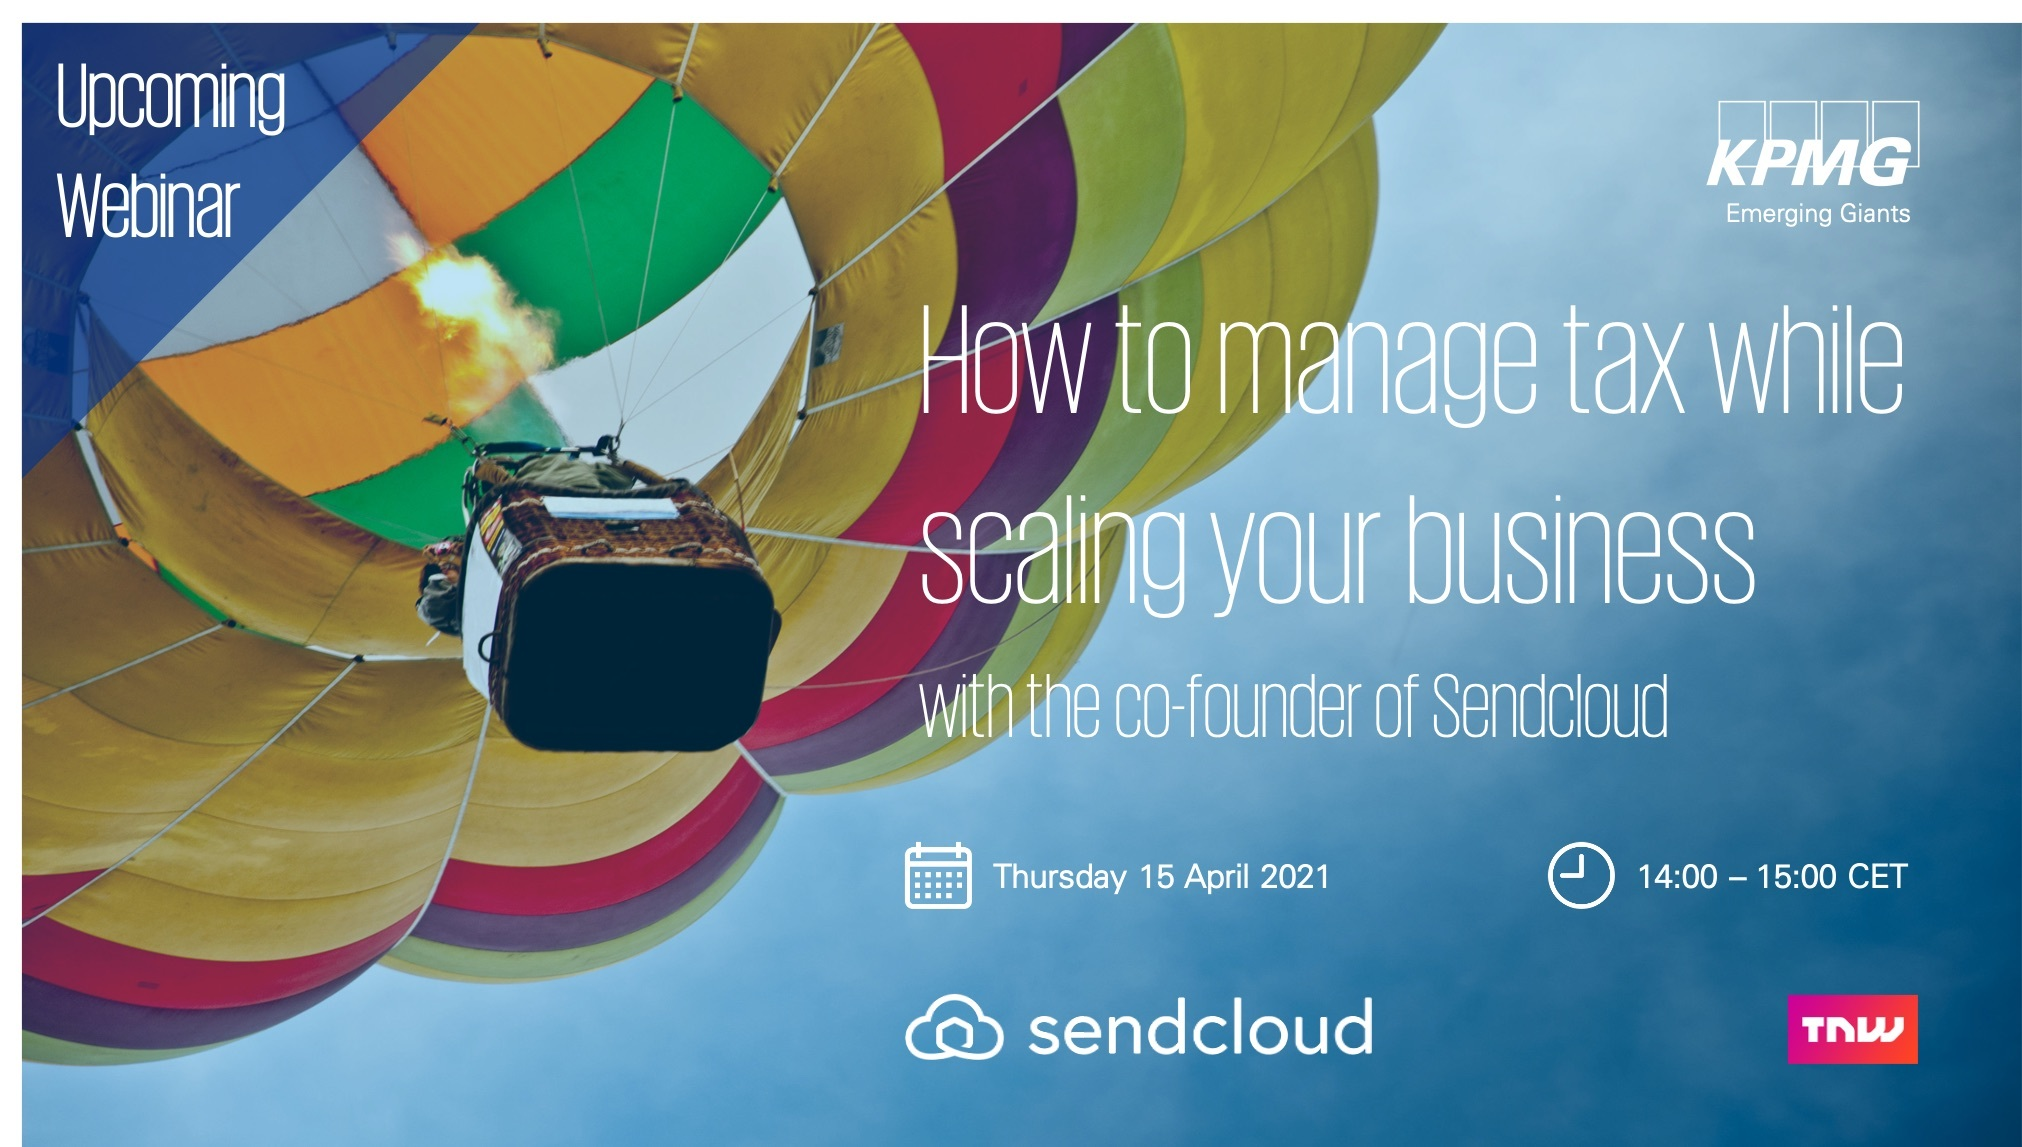 How to manage tax while scaling your business with KPMG and Sendcloud